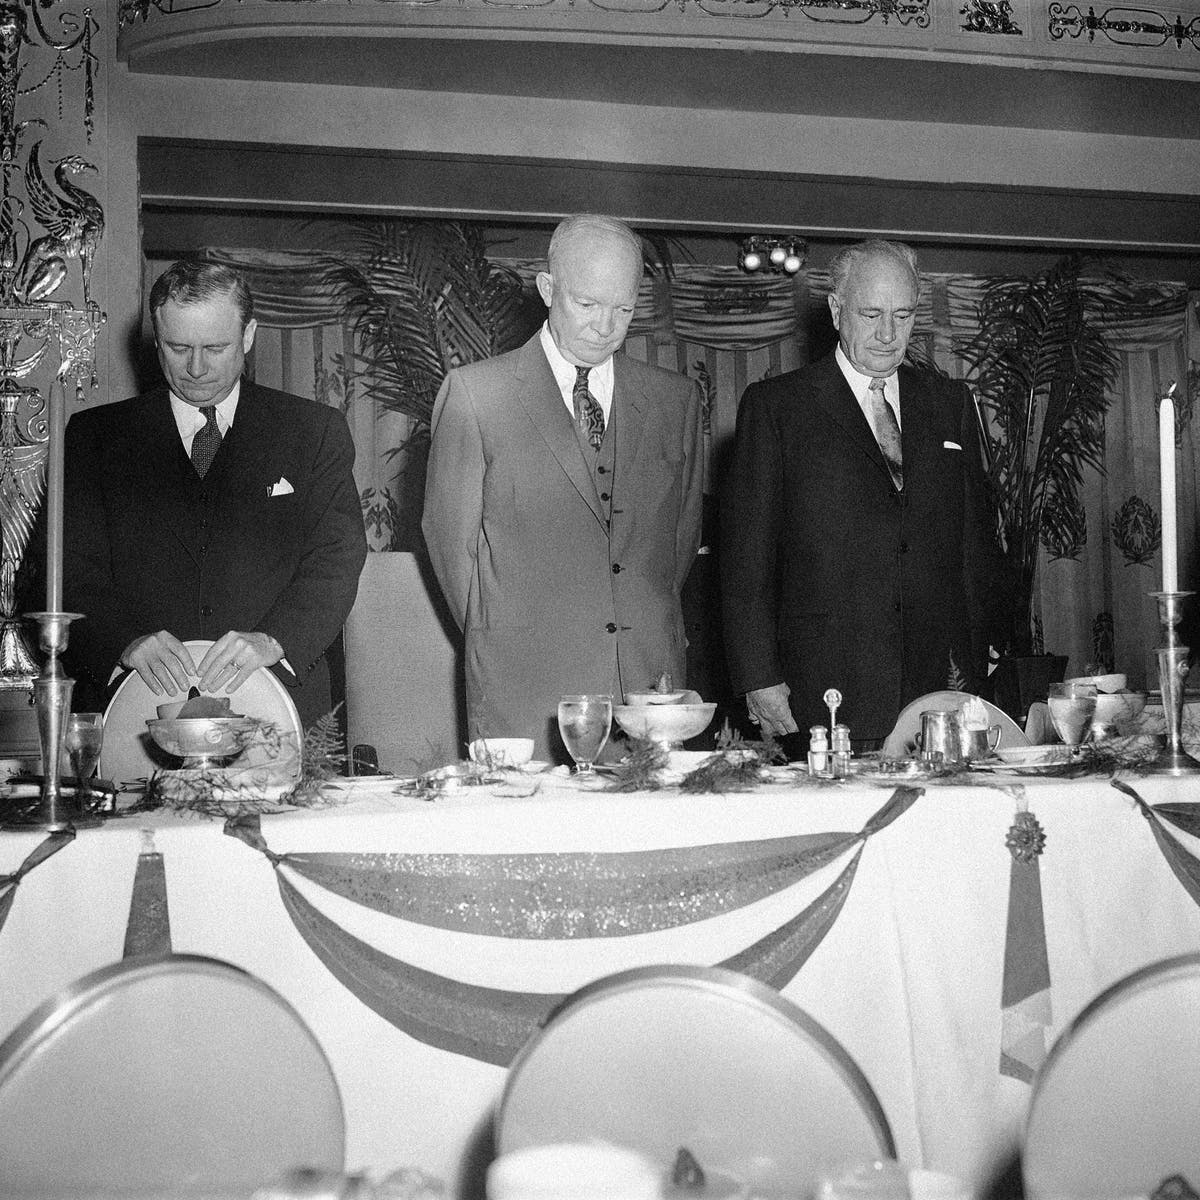 National Prayer Breakfast: What does its history reveal?